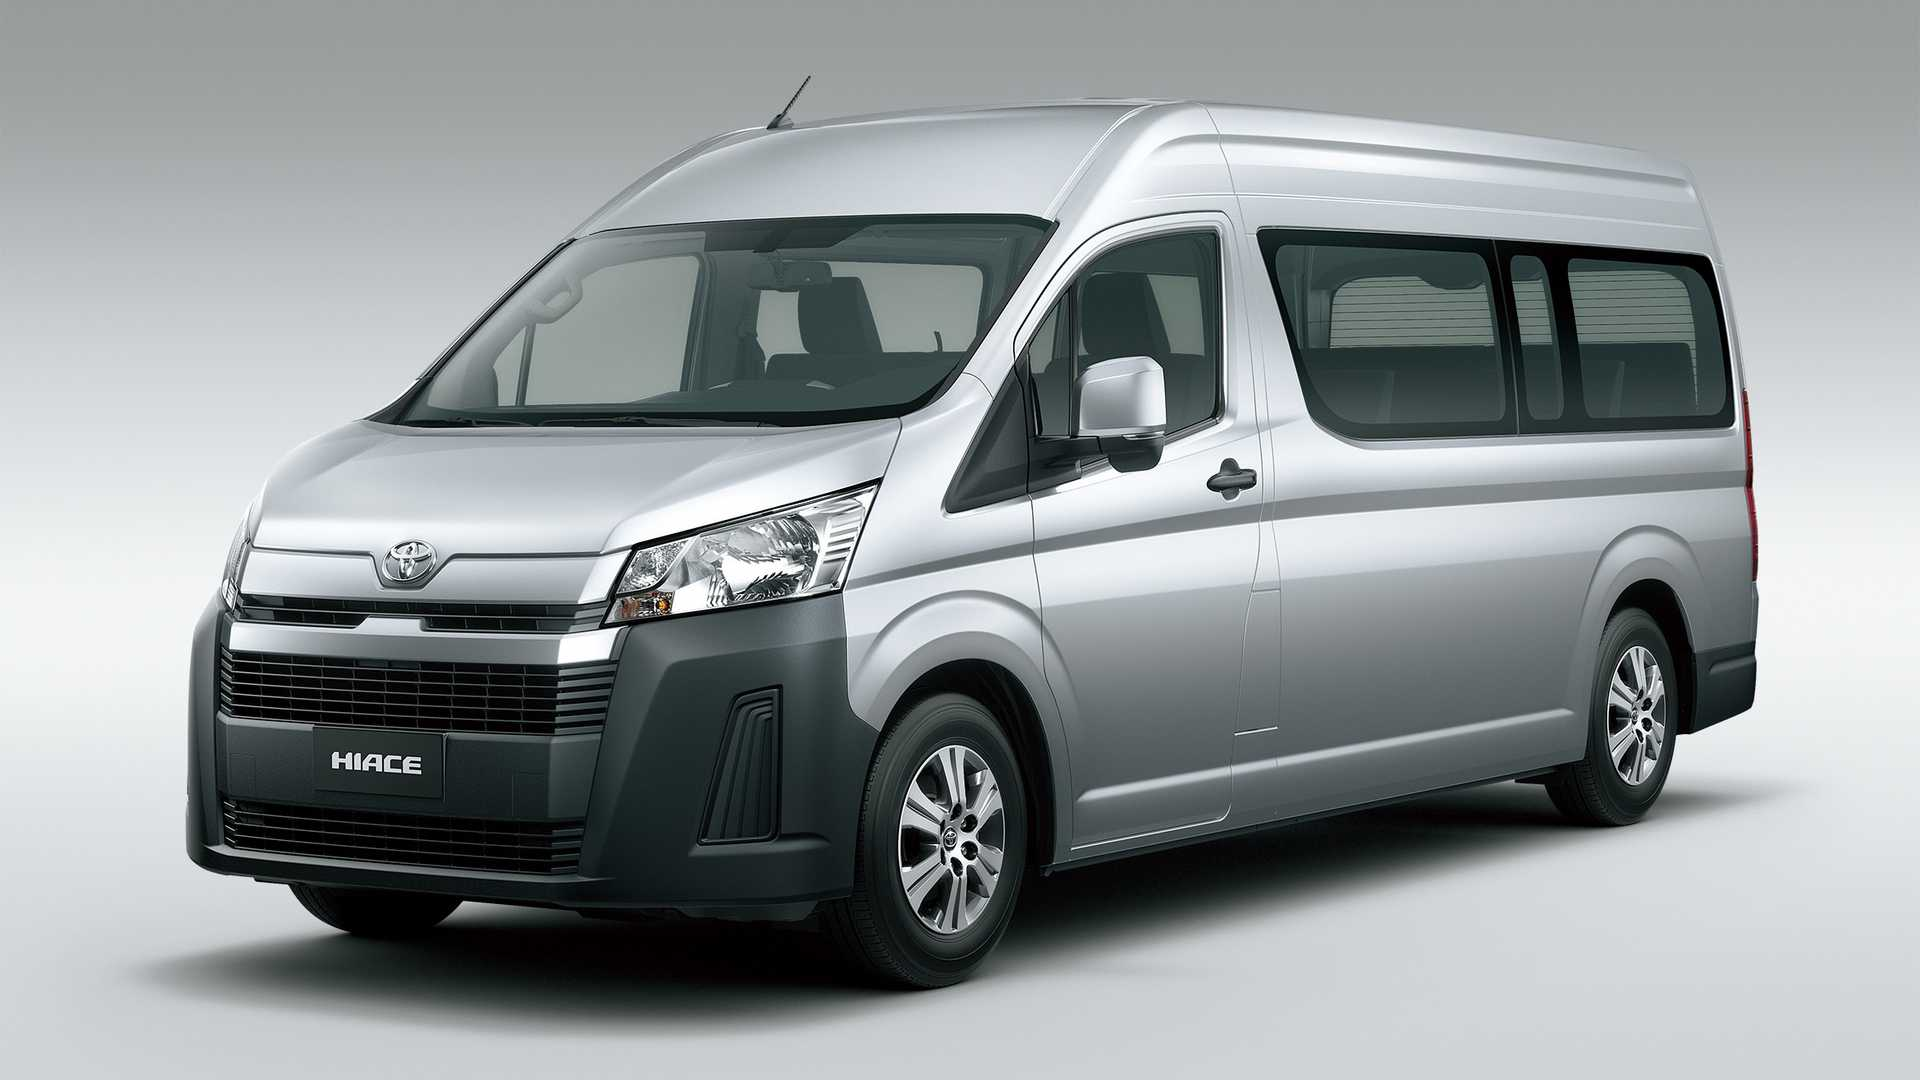 70 New Toyota Hiace 2019 Engine